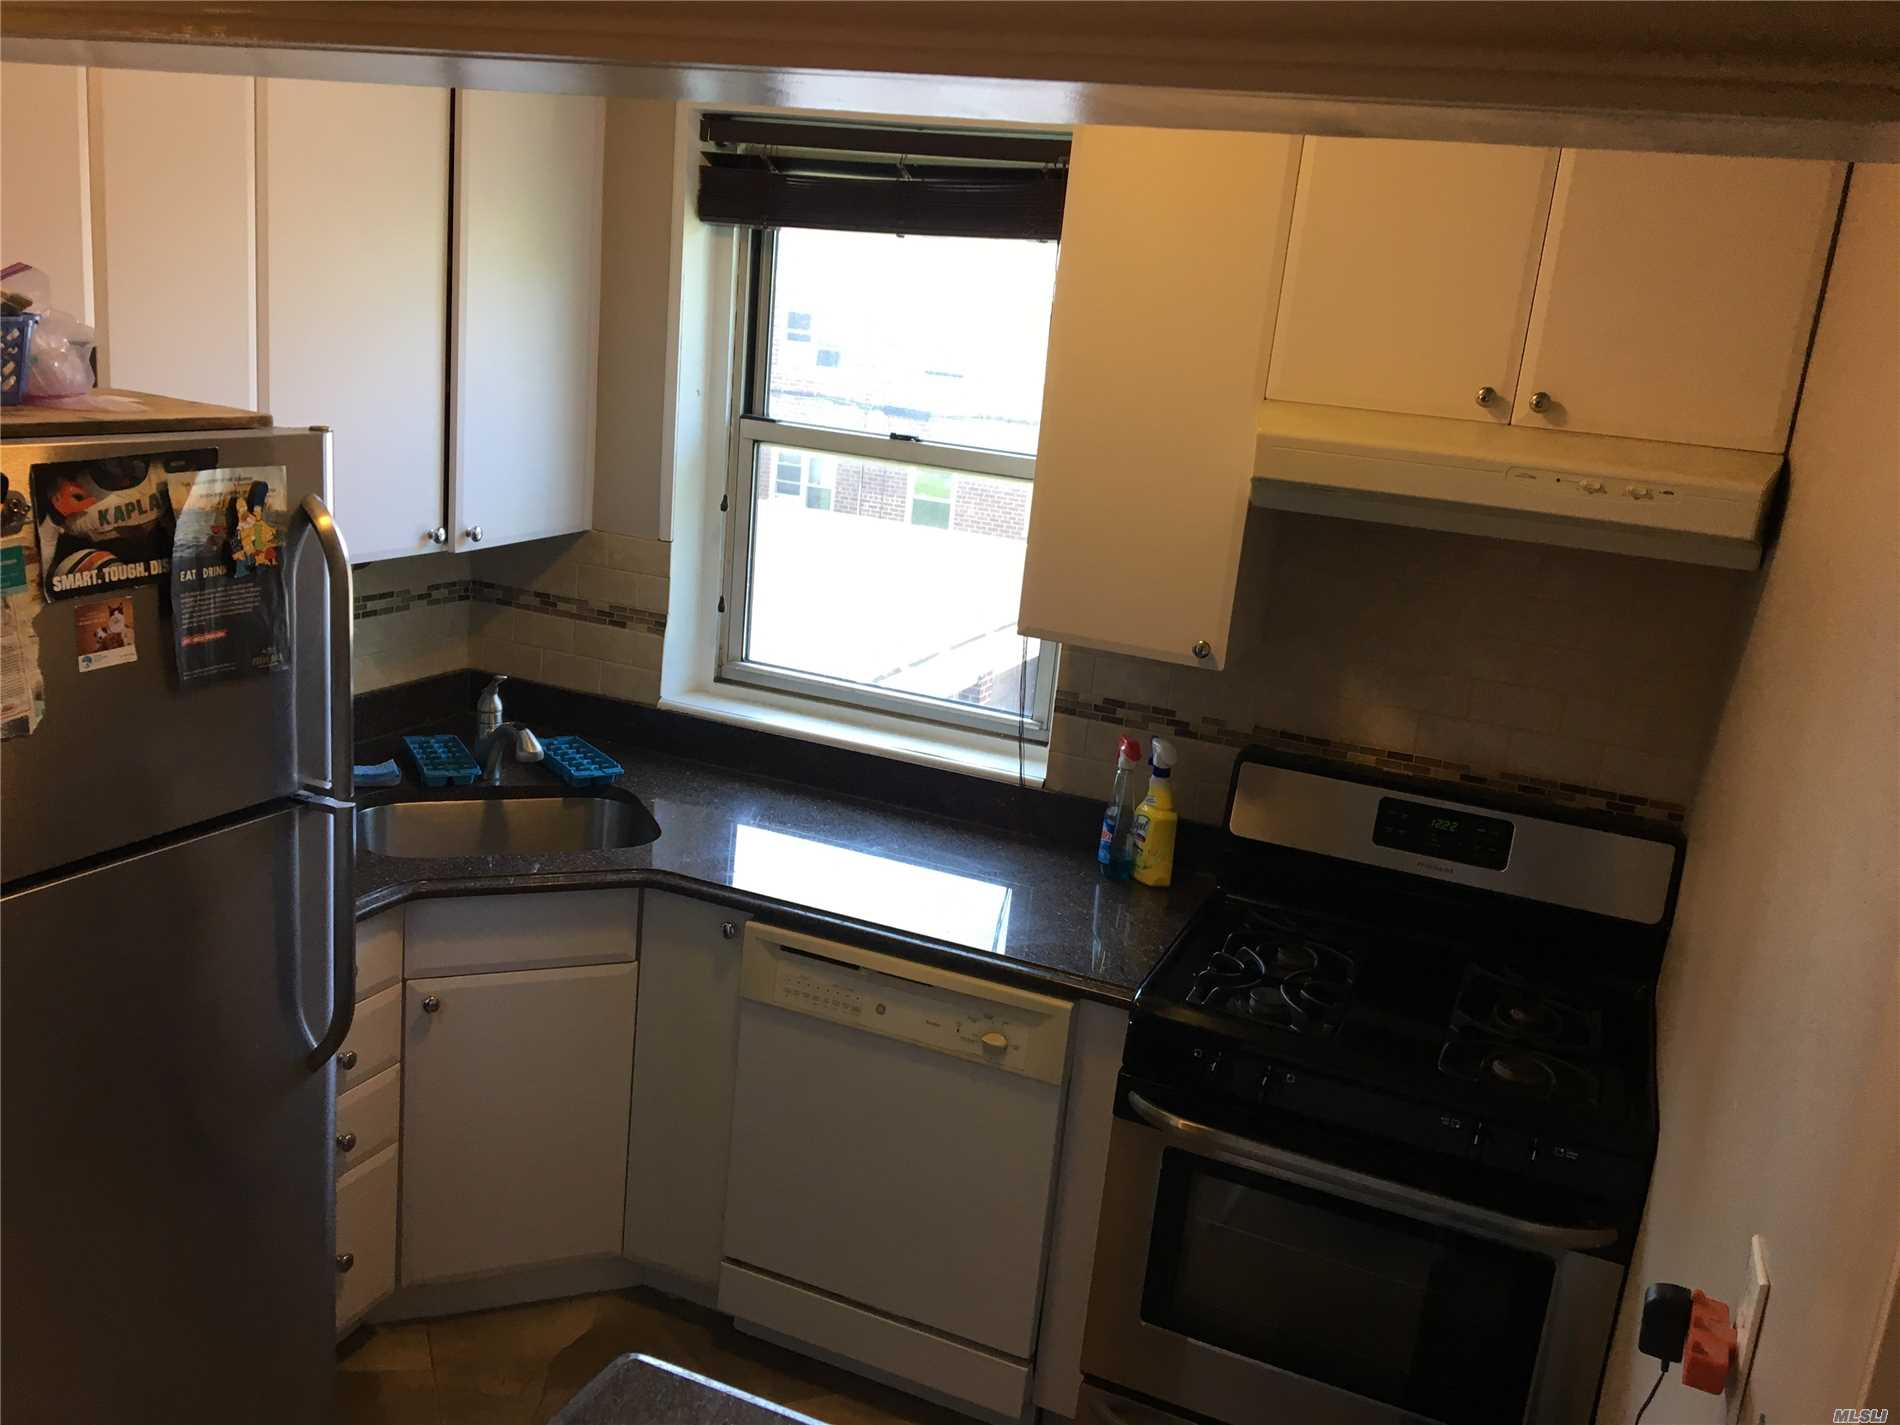 Beautiful Renovated 1 Br Apartment In The Desirable Baydale Co-Op Complex Of Bayside...Apartment Features 1 Huge Bedroom And Renovated Bathroom...Kitchen Also Fully Renovated With Granite And Lots Of Cabinets....Tons Of Closet Space....Airy And Super Sunlit....Close To Everything